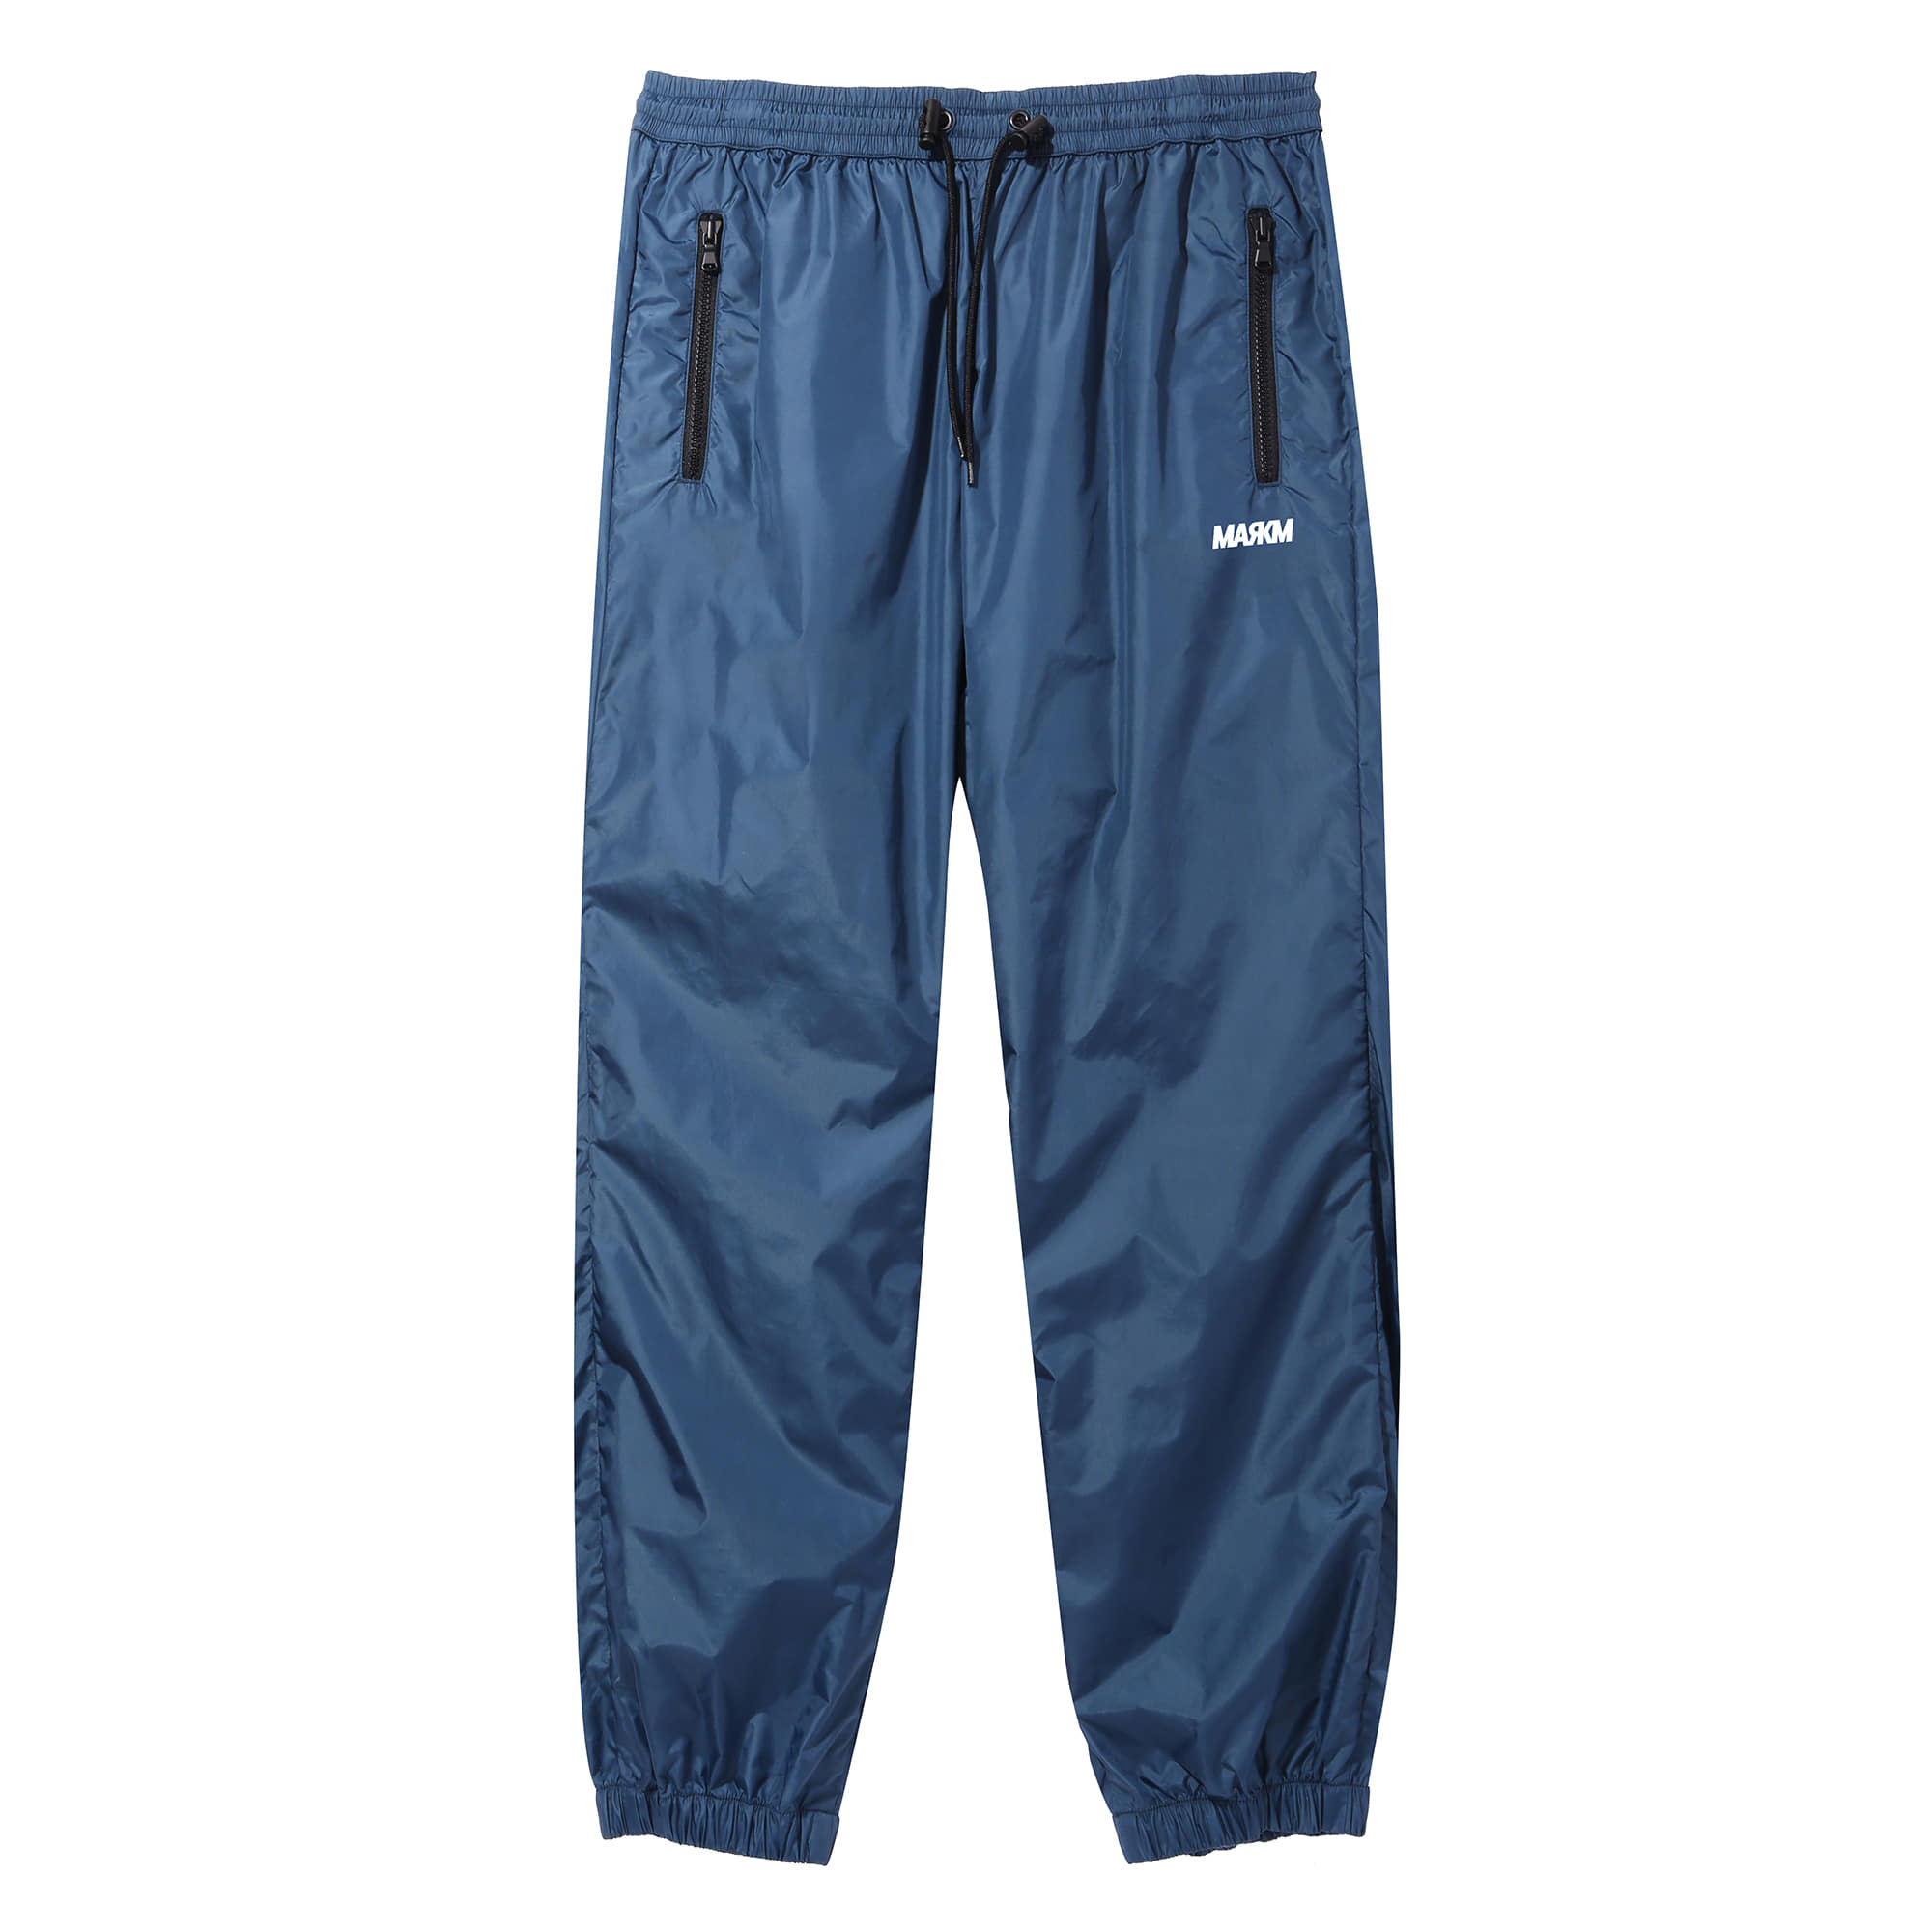 19FW MM Jogger Pants MYFAI4508